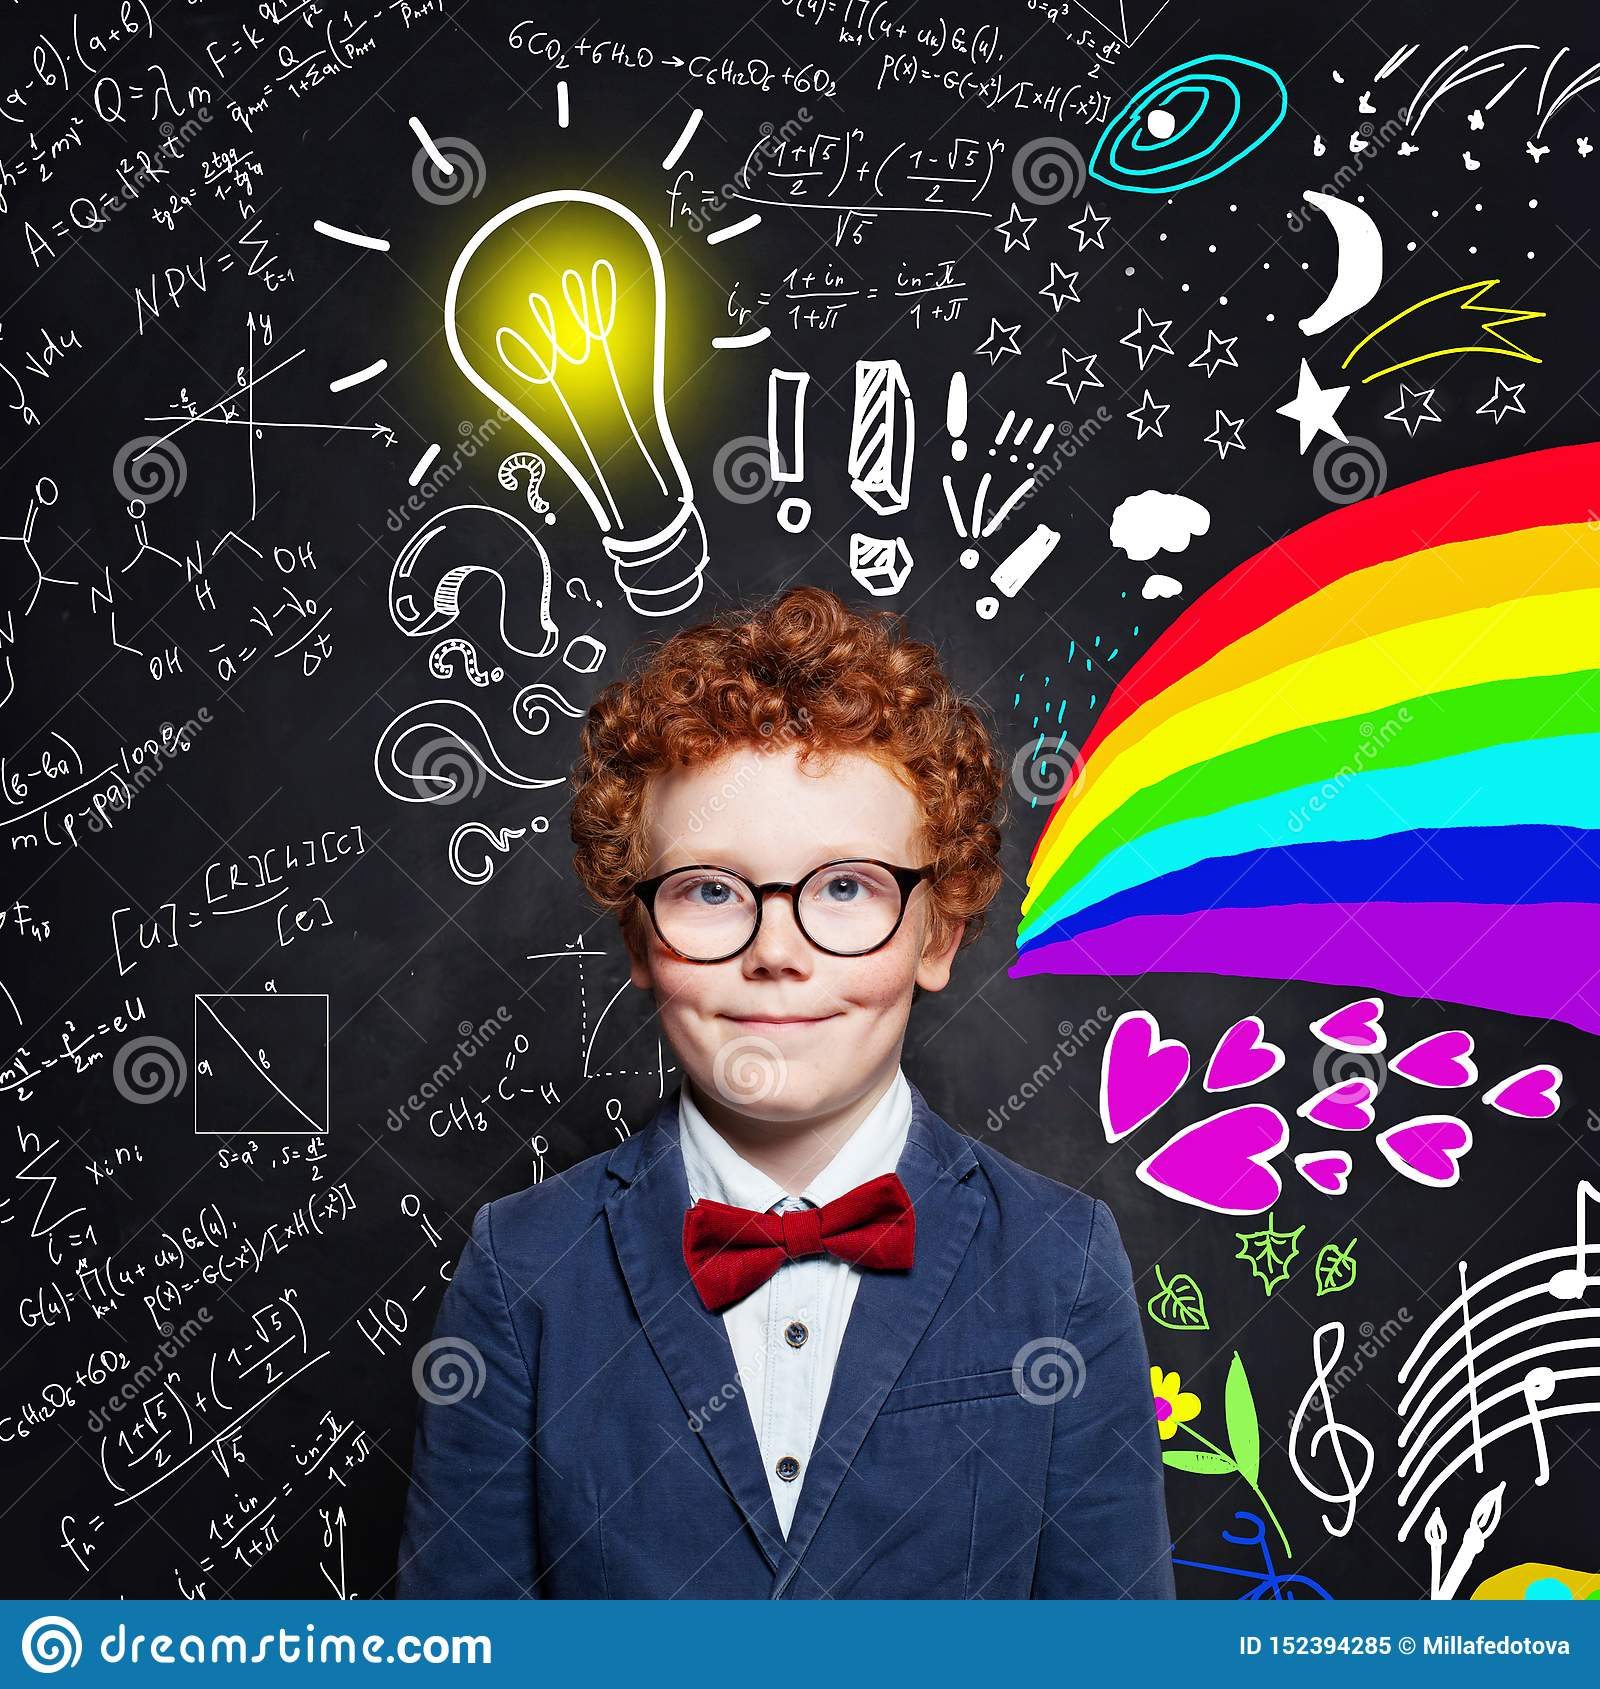 Child boy with ginger hair wearing glasses on blackboard background with science formulas, art pattern and light bulb idea concept